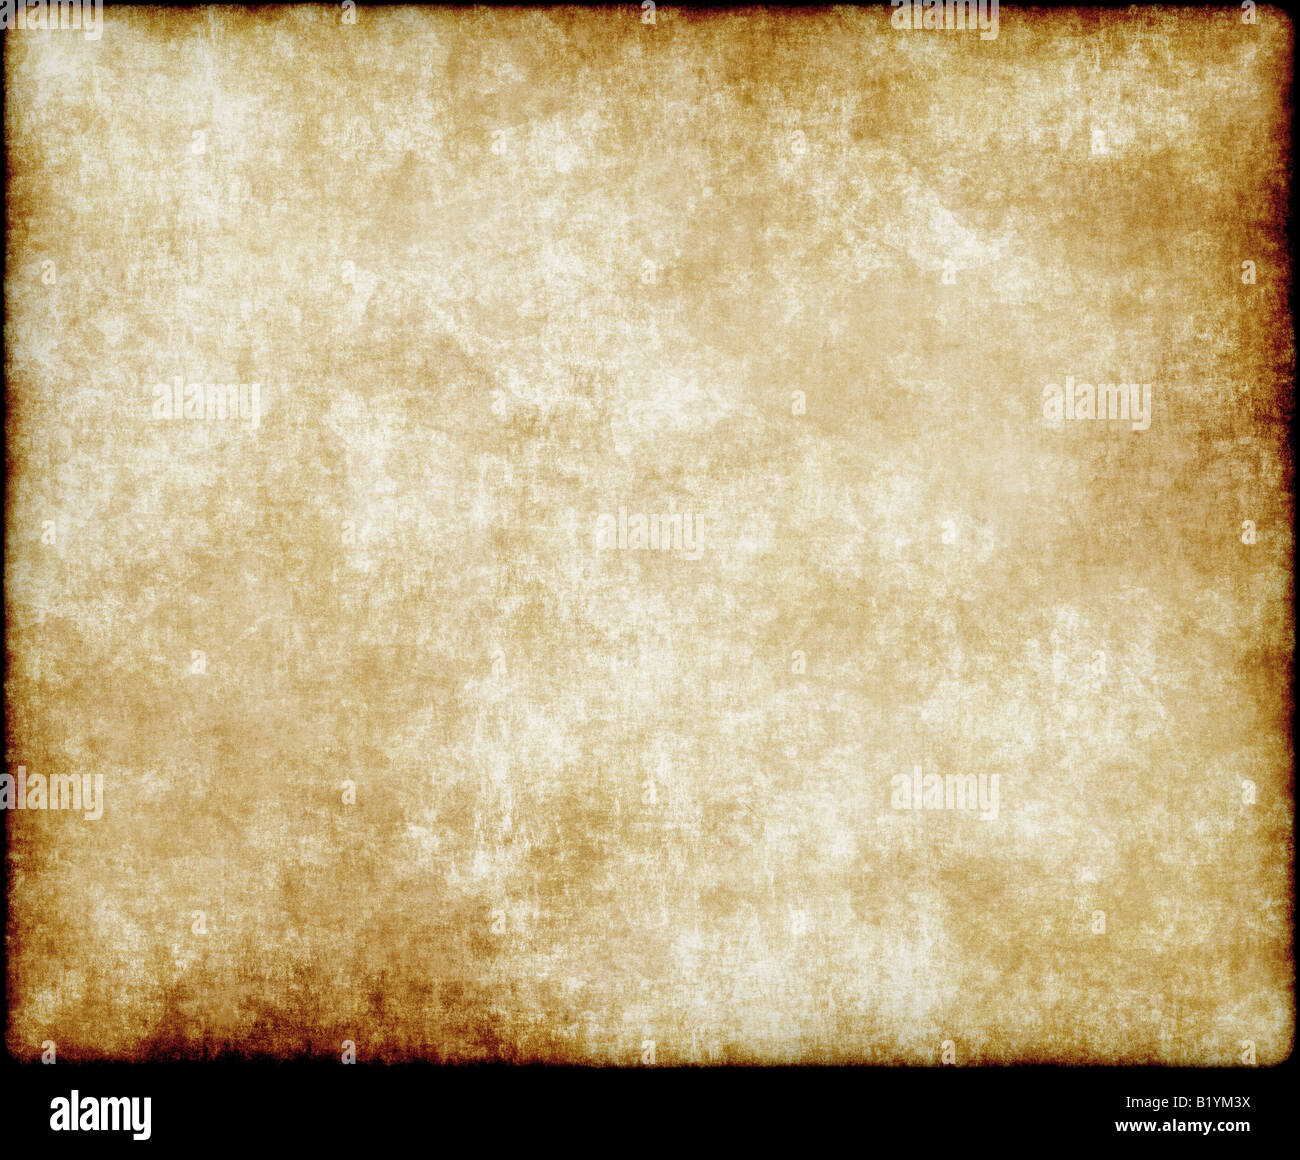 large old paper or parchment background texture - Stock Image